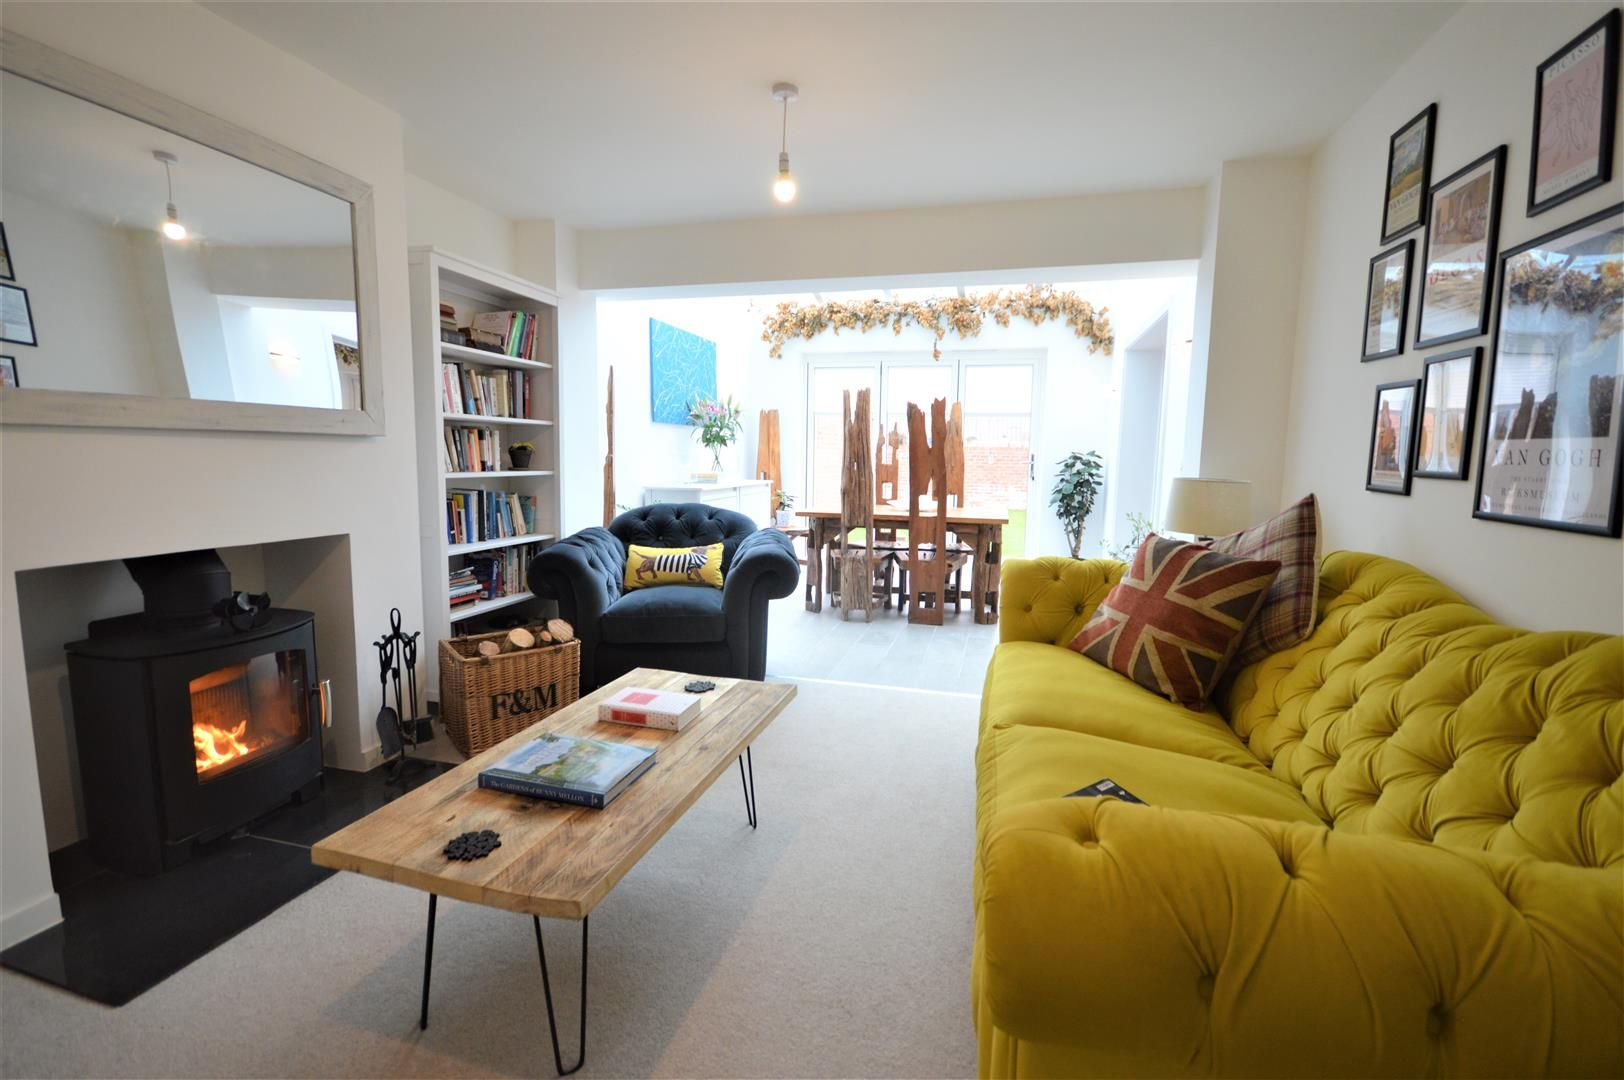 5 bed detached for sale in Weobley 2